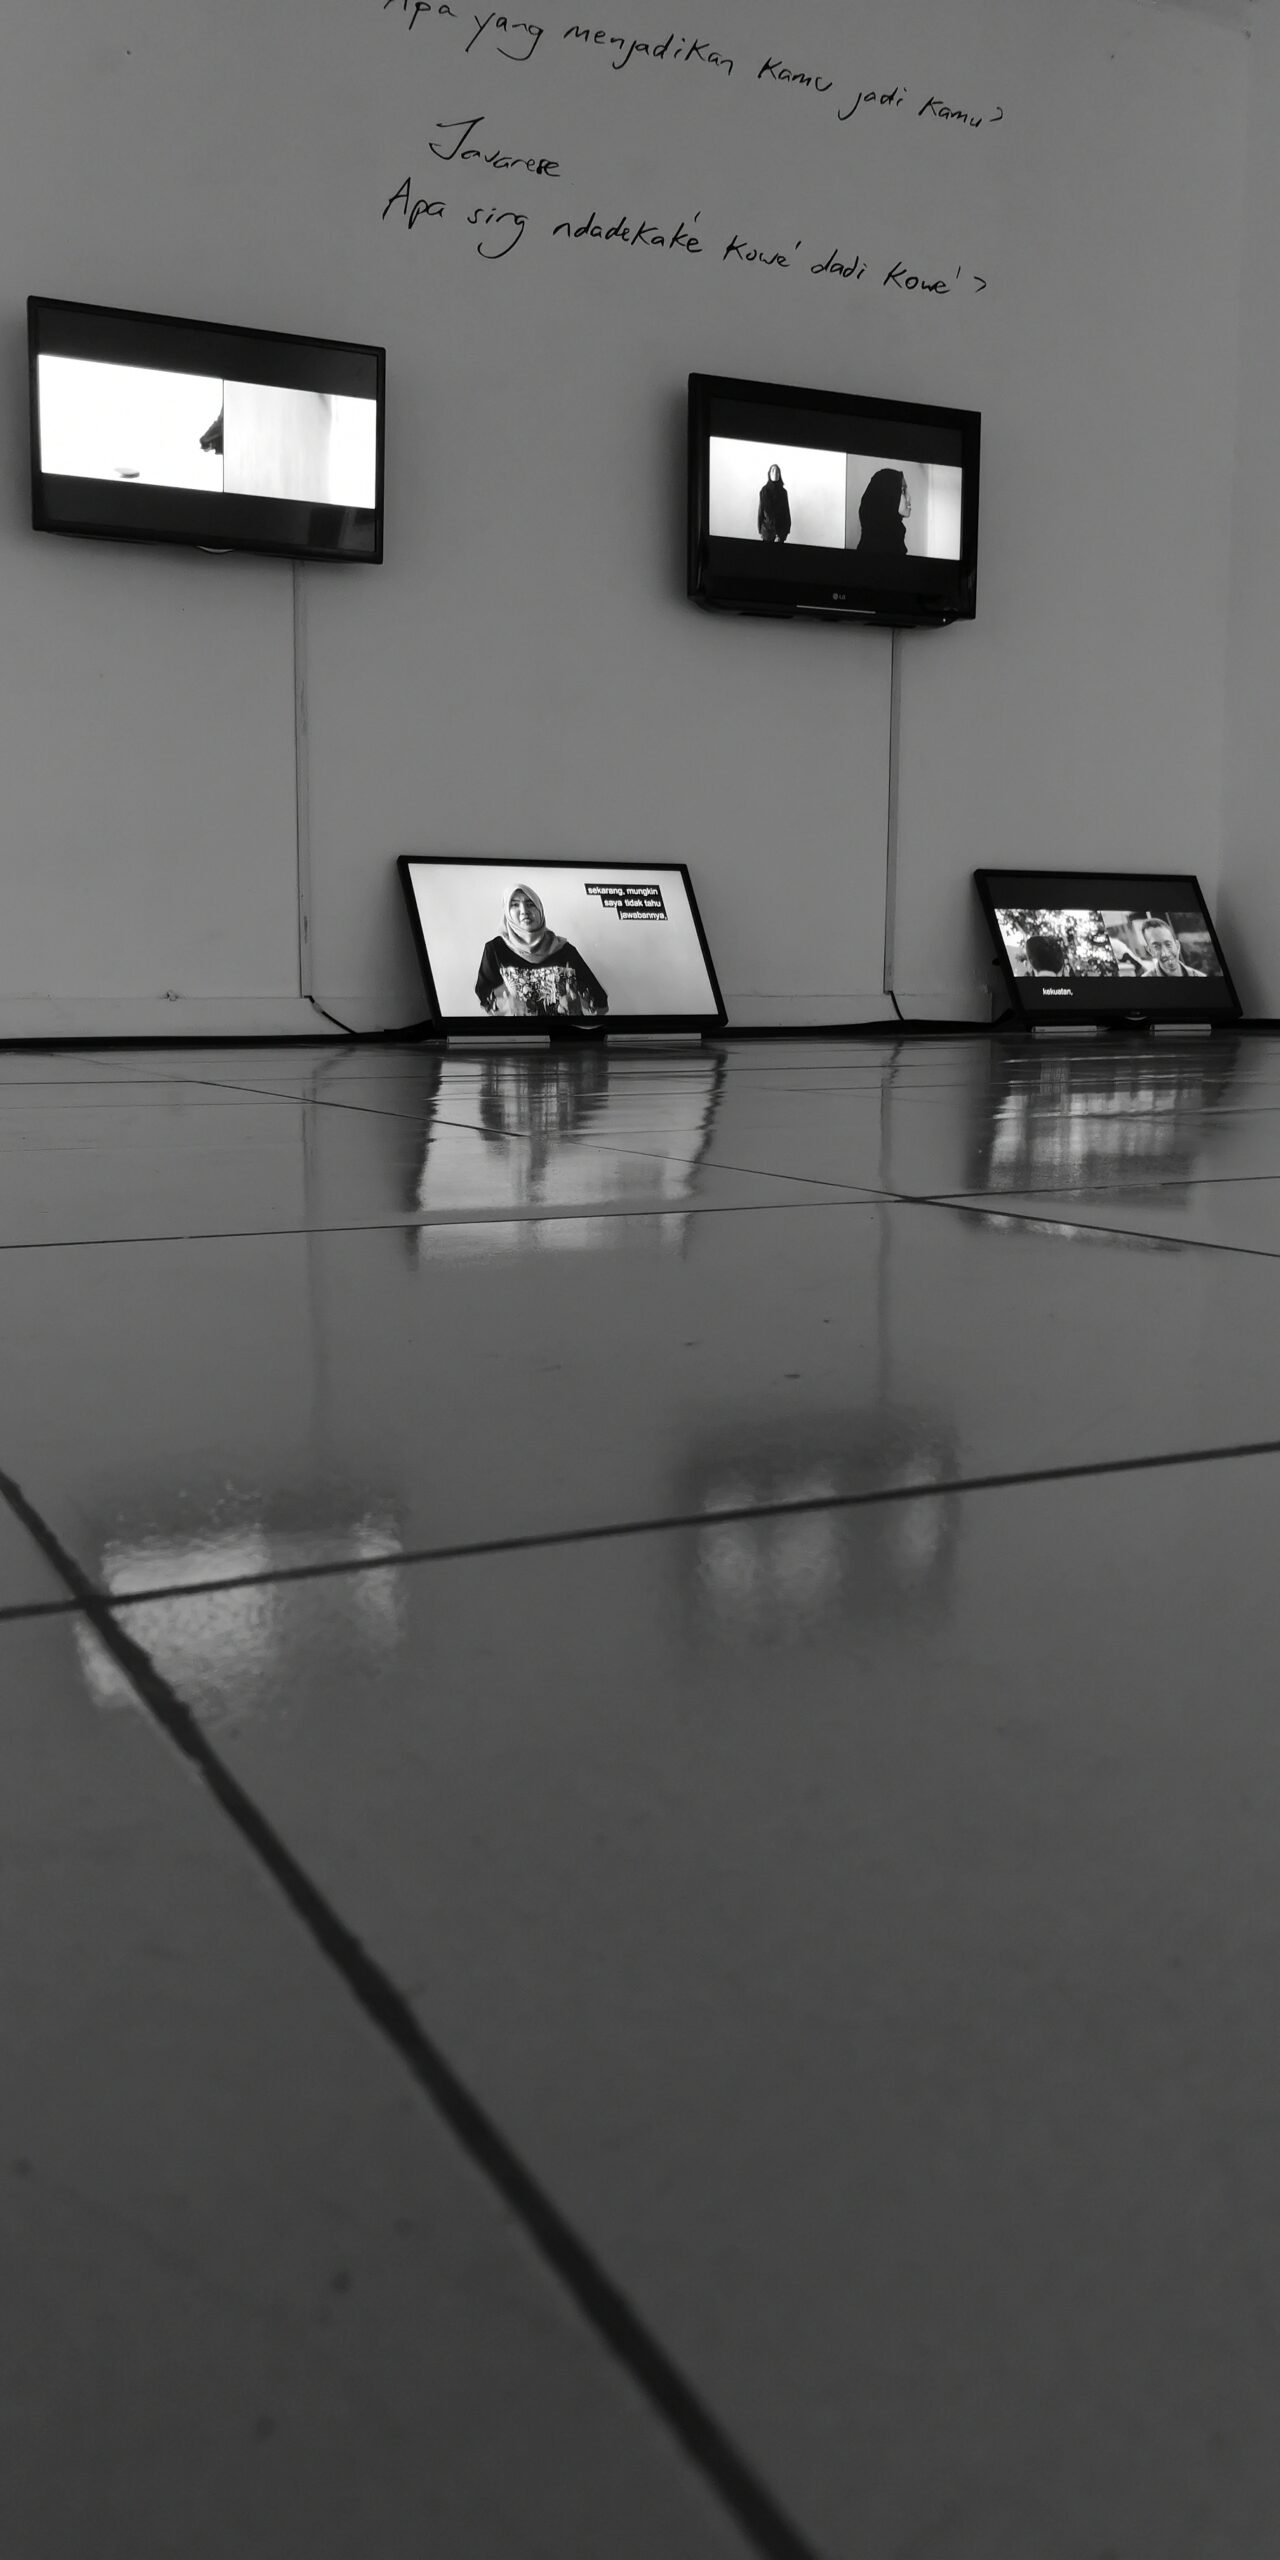 Exhibition view of video installation with monitors hung on the wall and resting on the floor.